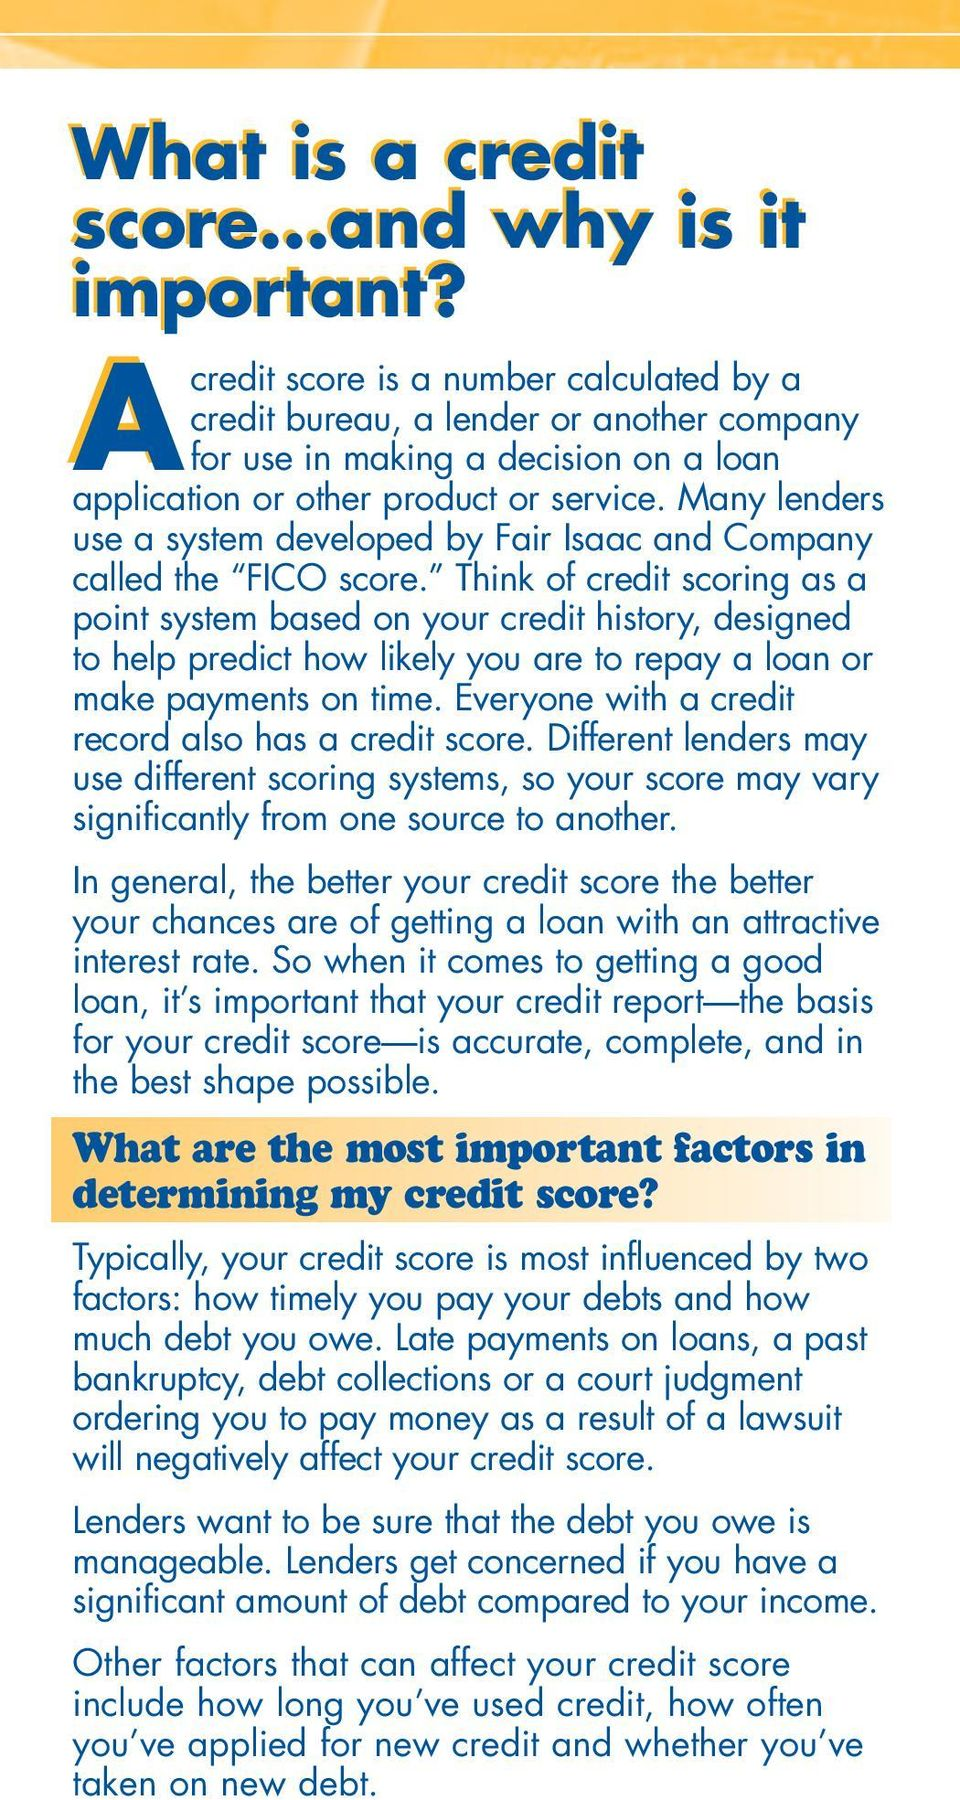 Many lenders use a system developed by Fair Isaac and Company called the FICO score.